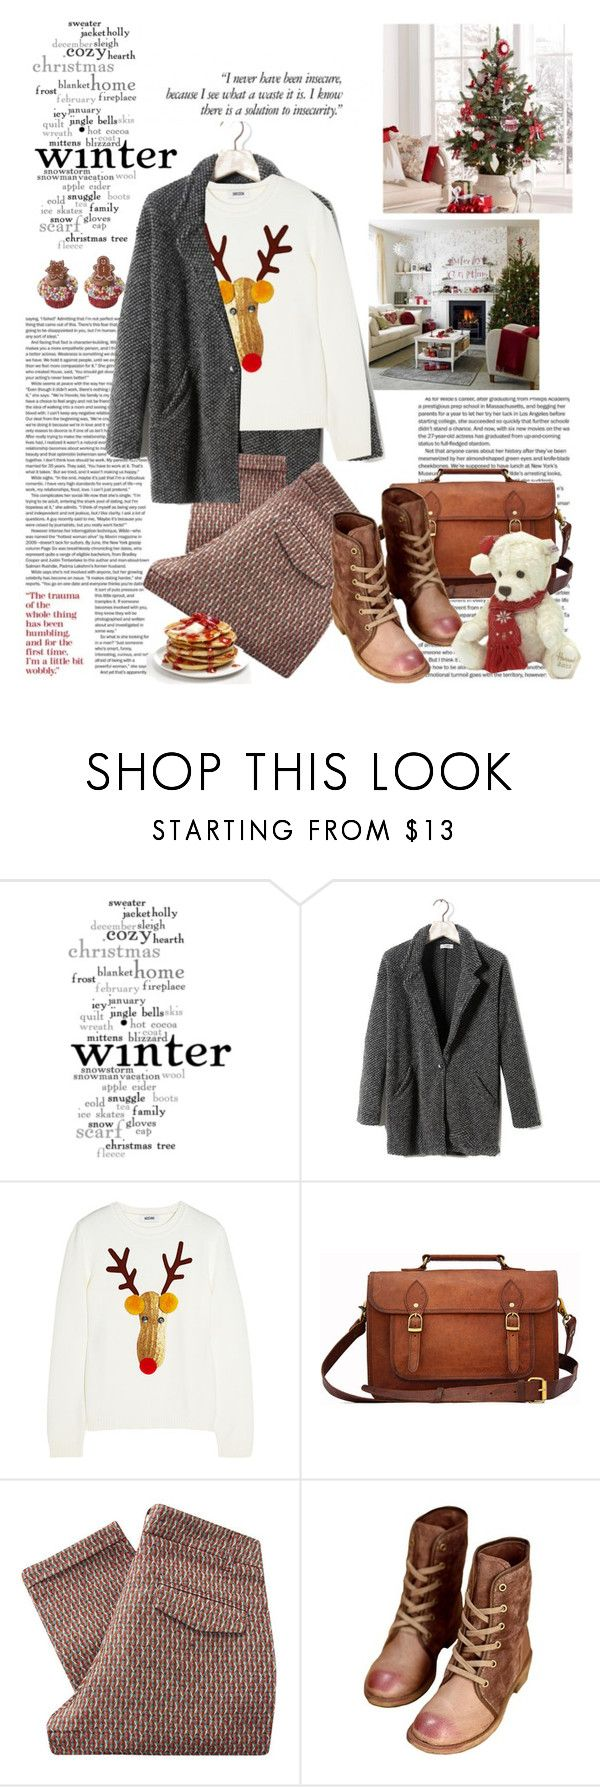 """maki"" by makistefaneli ❤ liked on Polyvore featuring WALL, Pull&Bear, Moschino, Retrò, Sessùn and Steiff"